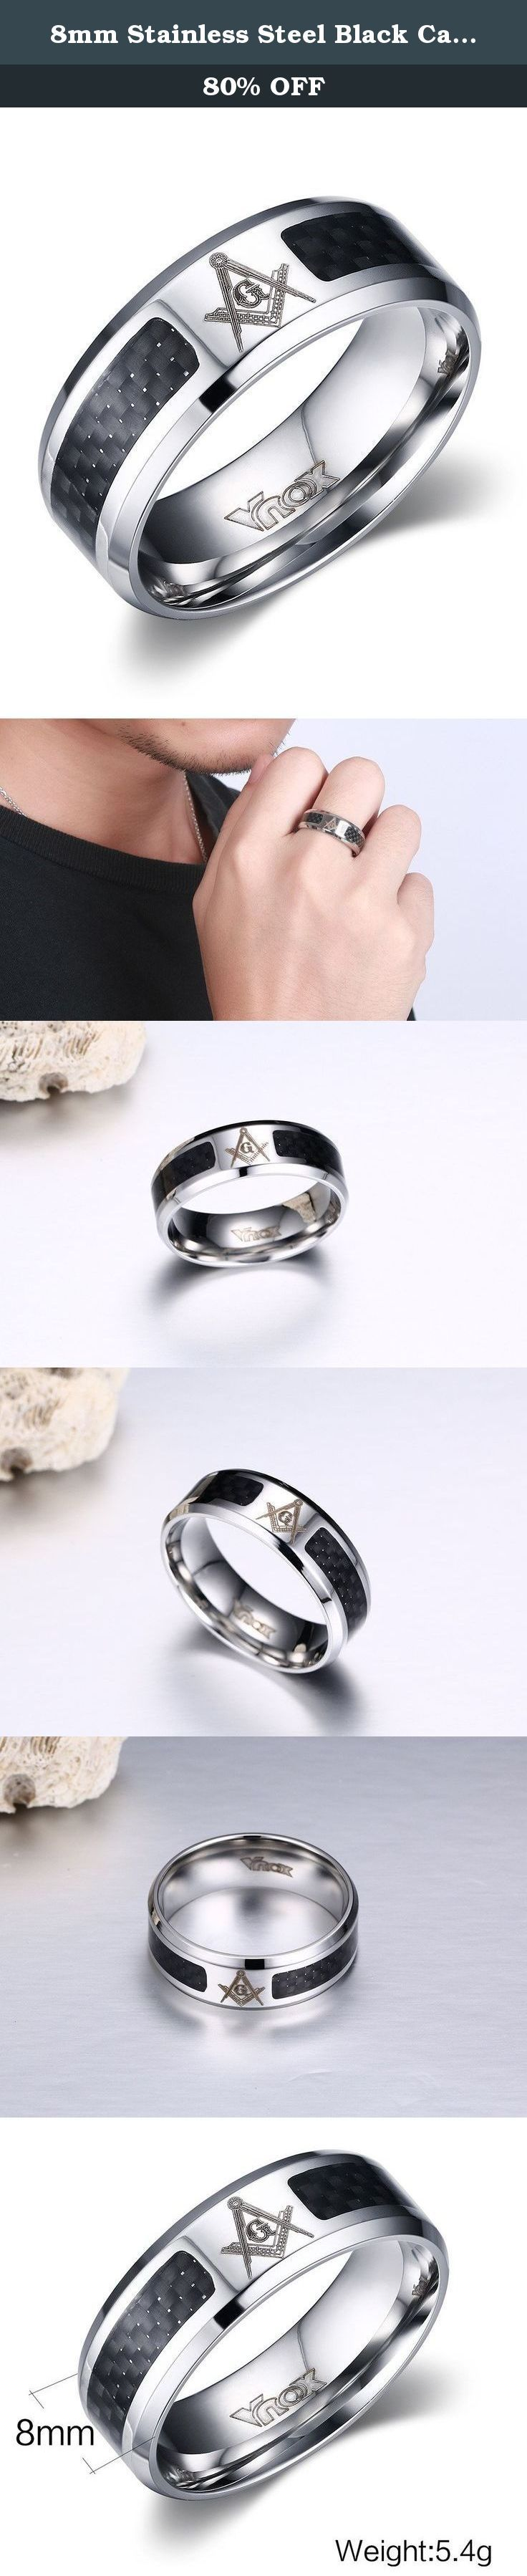 """8mm Stainless Steel Black Carbon Fiber Inlay Masonic Freemason Symbol Wedding Ring Bands. 8mm Stainless Steel Black Carbon Fiber Inlay Masonic Freemason Symbol Wedding Ring Bands About Masonic About Masonic """"Free-Mason"""" Named Free and Accepted Masons,It is a kind of religious Organization with brotherhood,also represented love and charity thought. Our Masonic Jewelry will be a great Masonic gift for the Freemason. Wear it,show your personality and belief. Give it to your friend,show your..."""